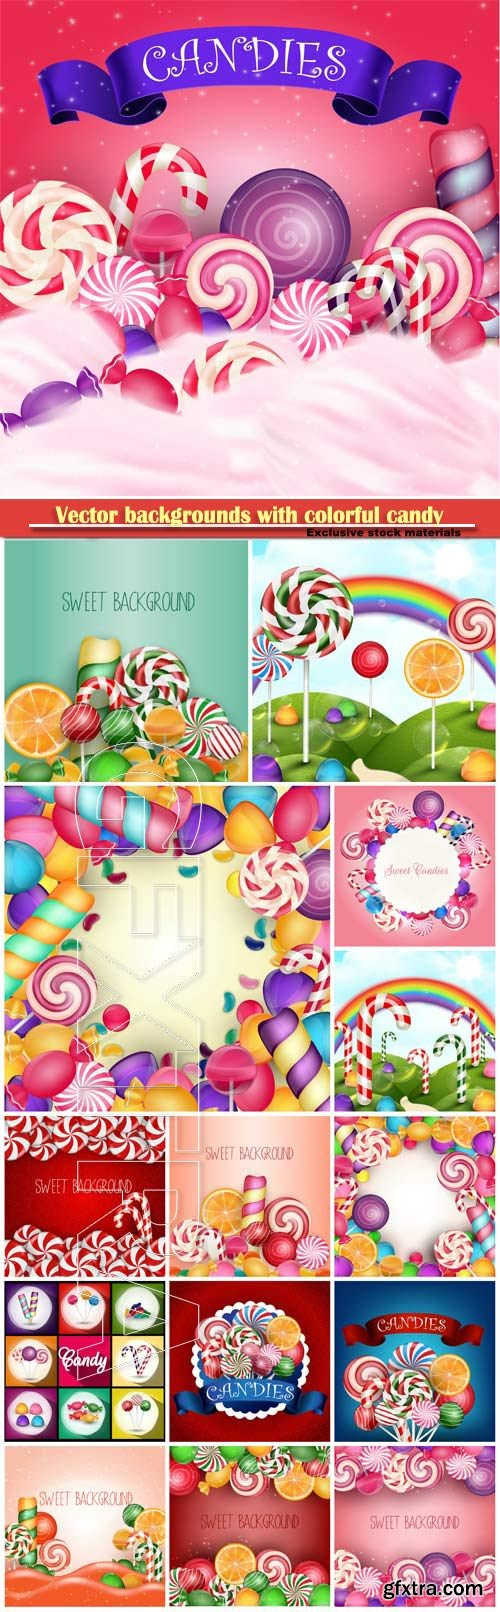 Vector backgrounds with colorful candy